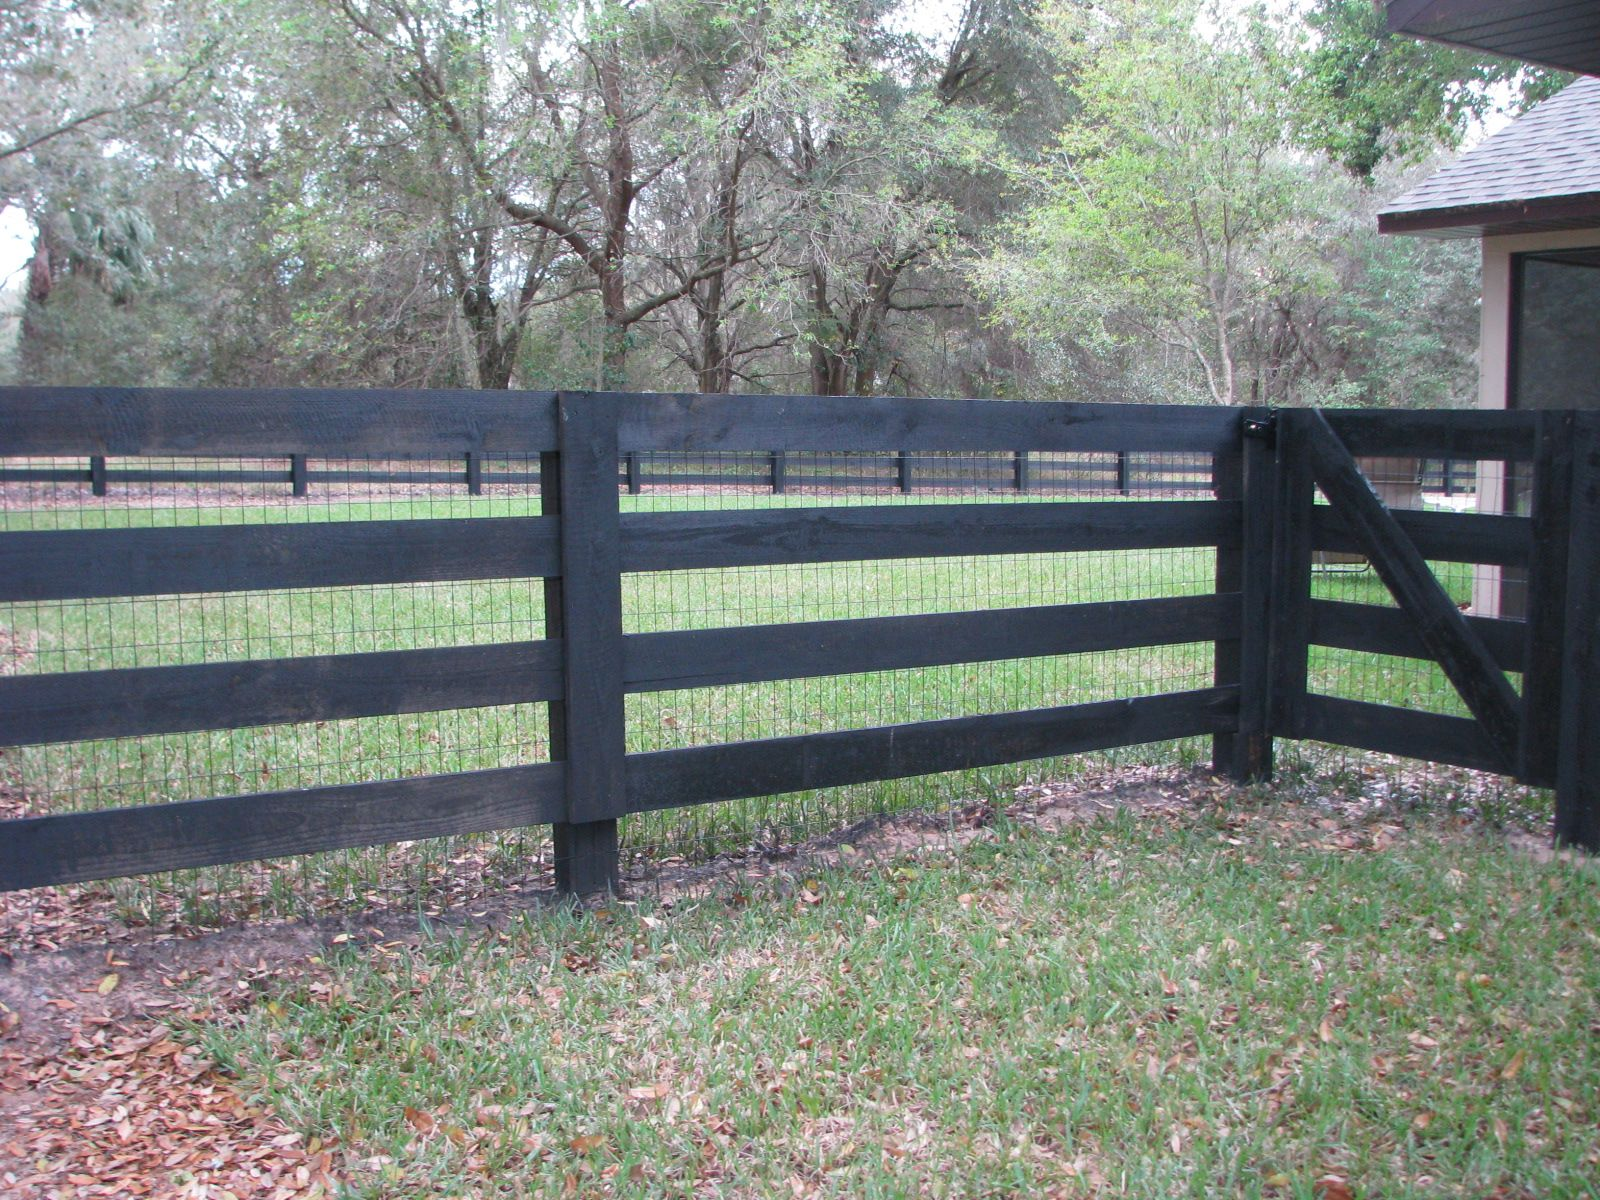 custom black wood horse fence with wire for additional protection